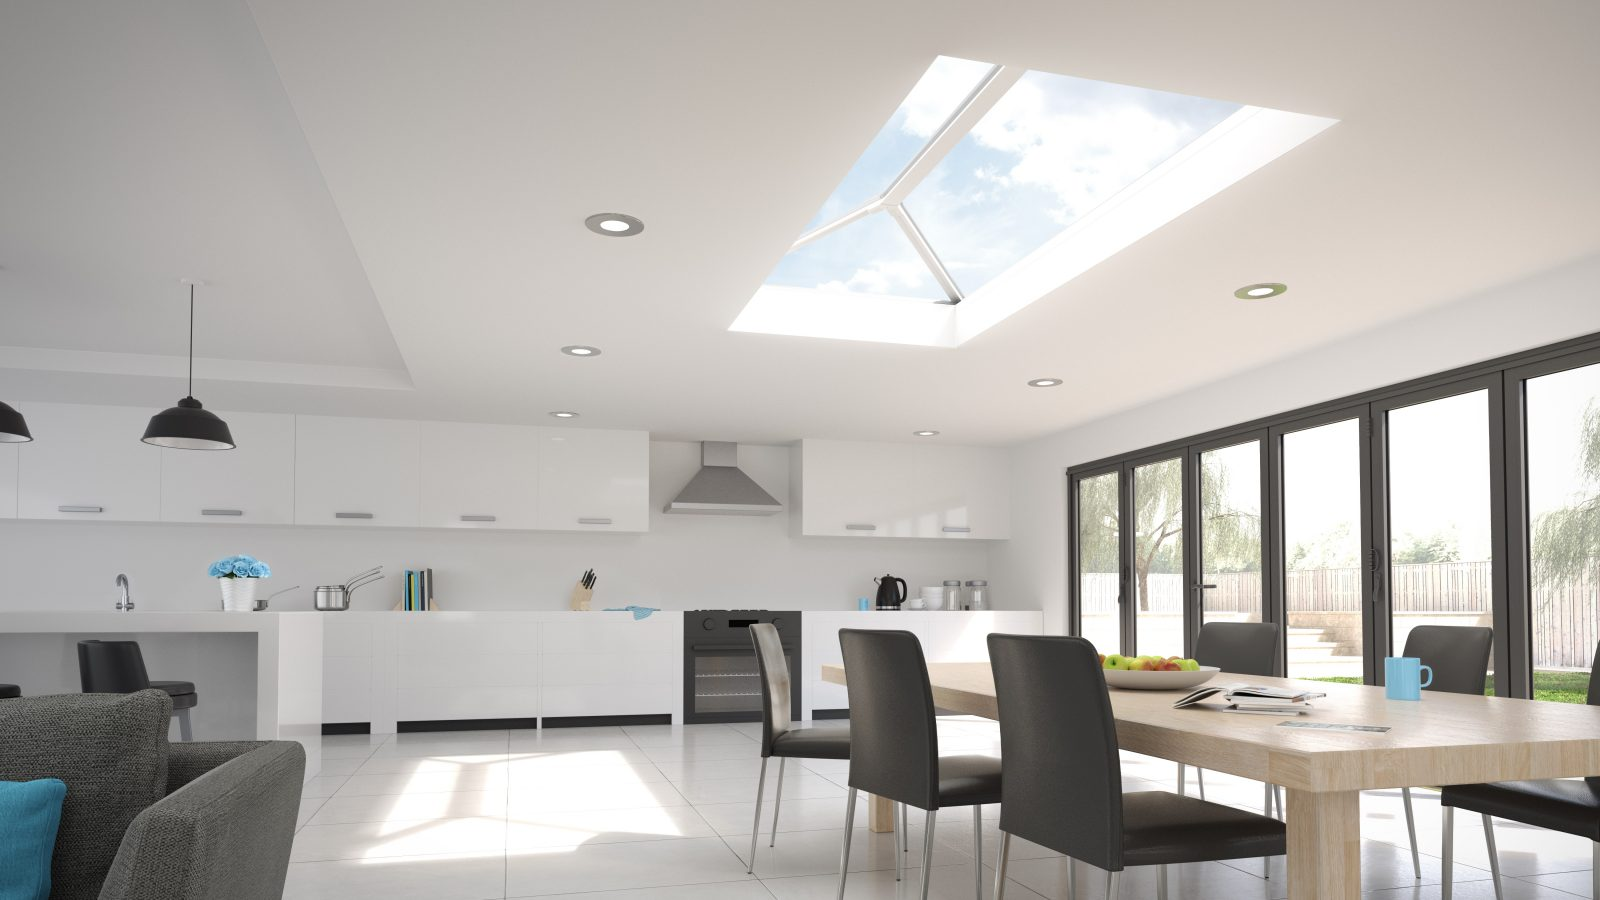 New Stratus Roof Lantern from Experts at Astraseal